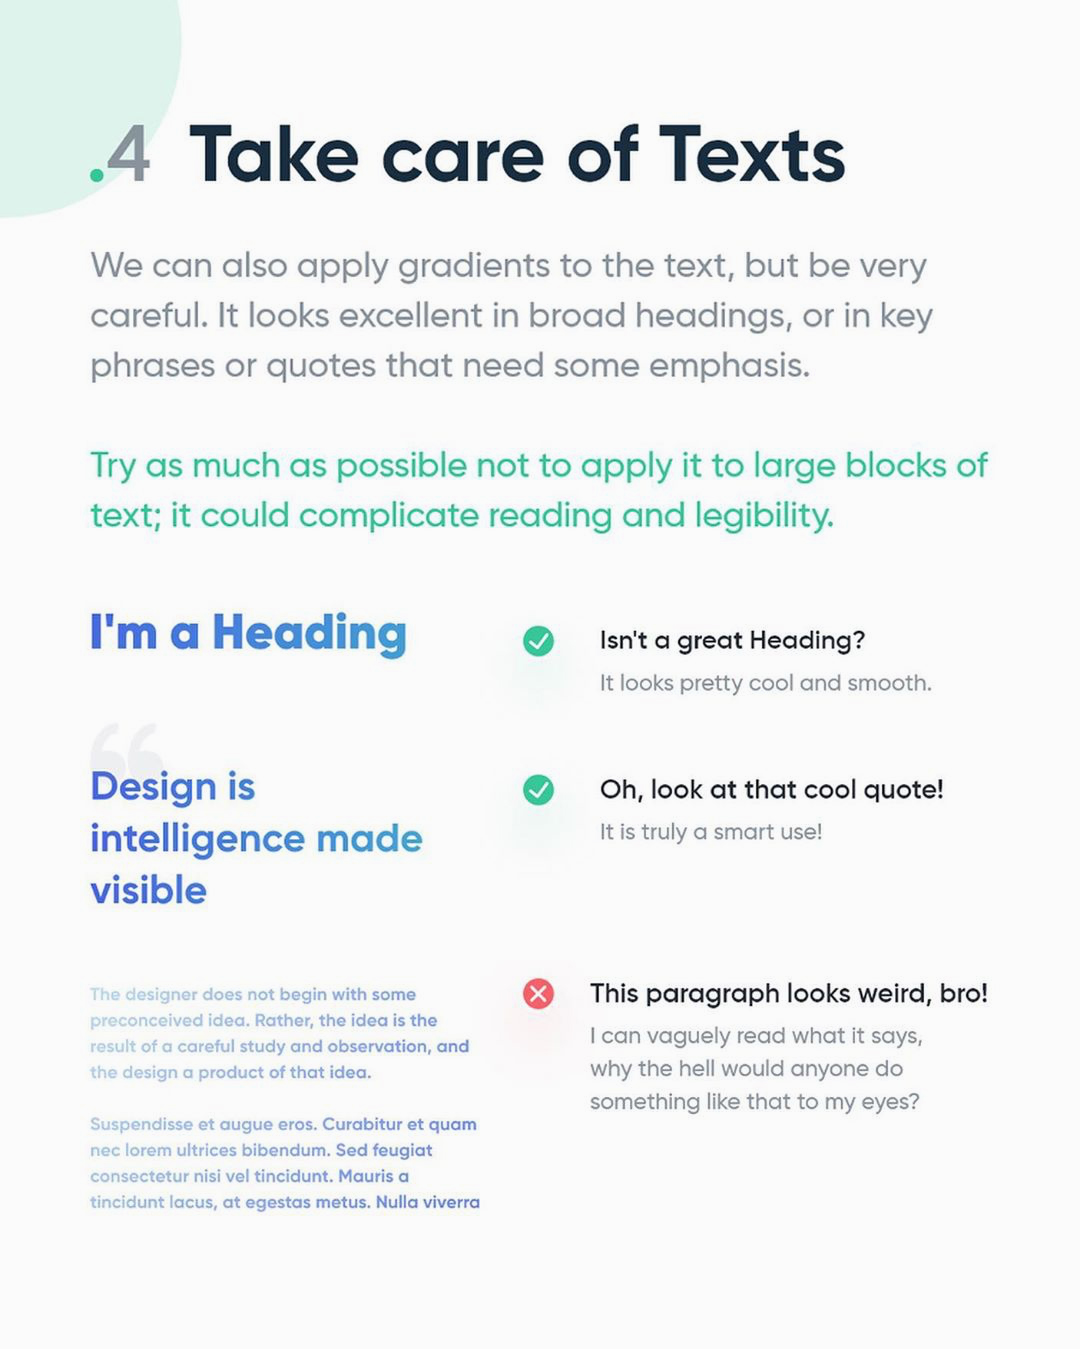 How to create better gradients - Take care of Texts